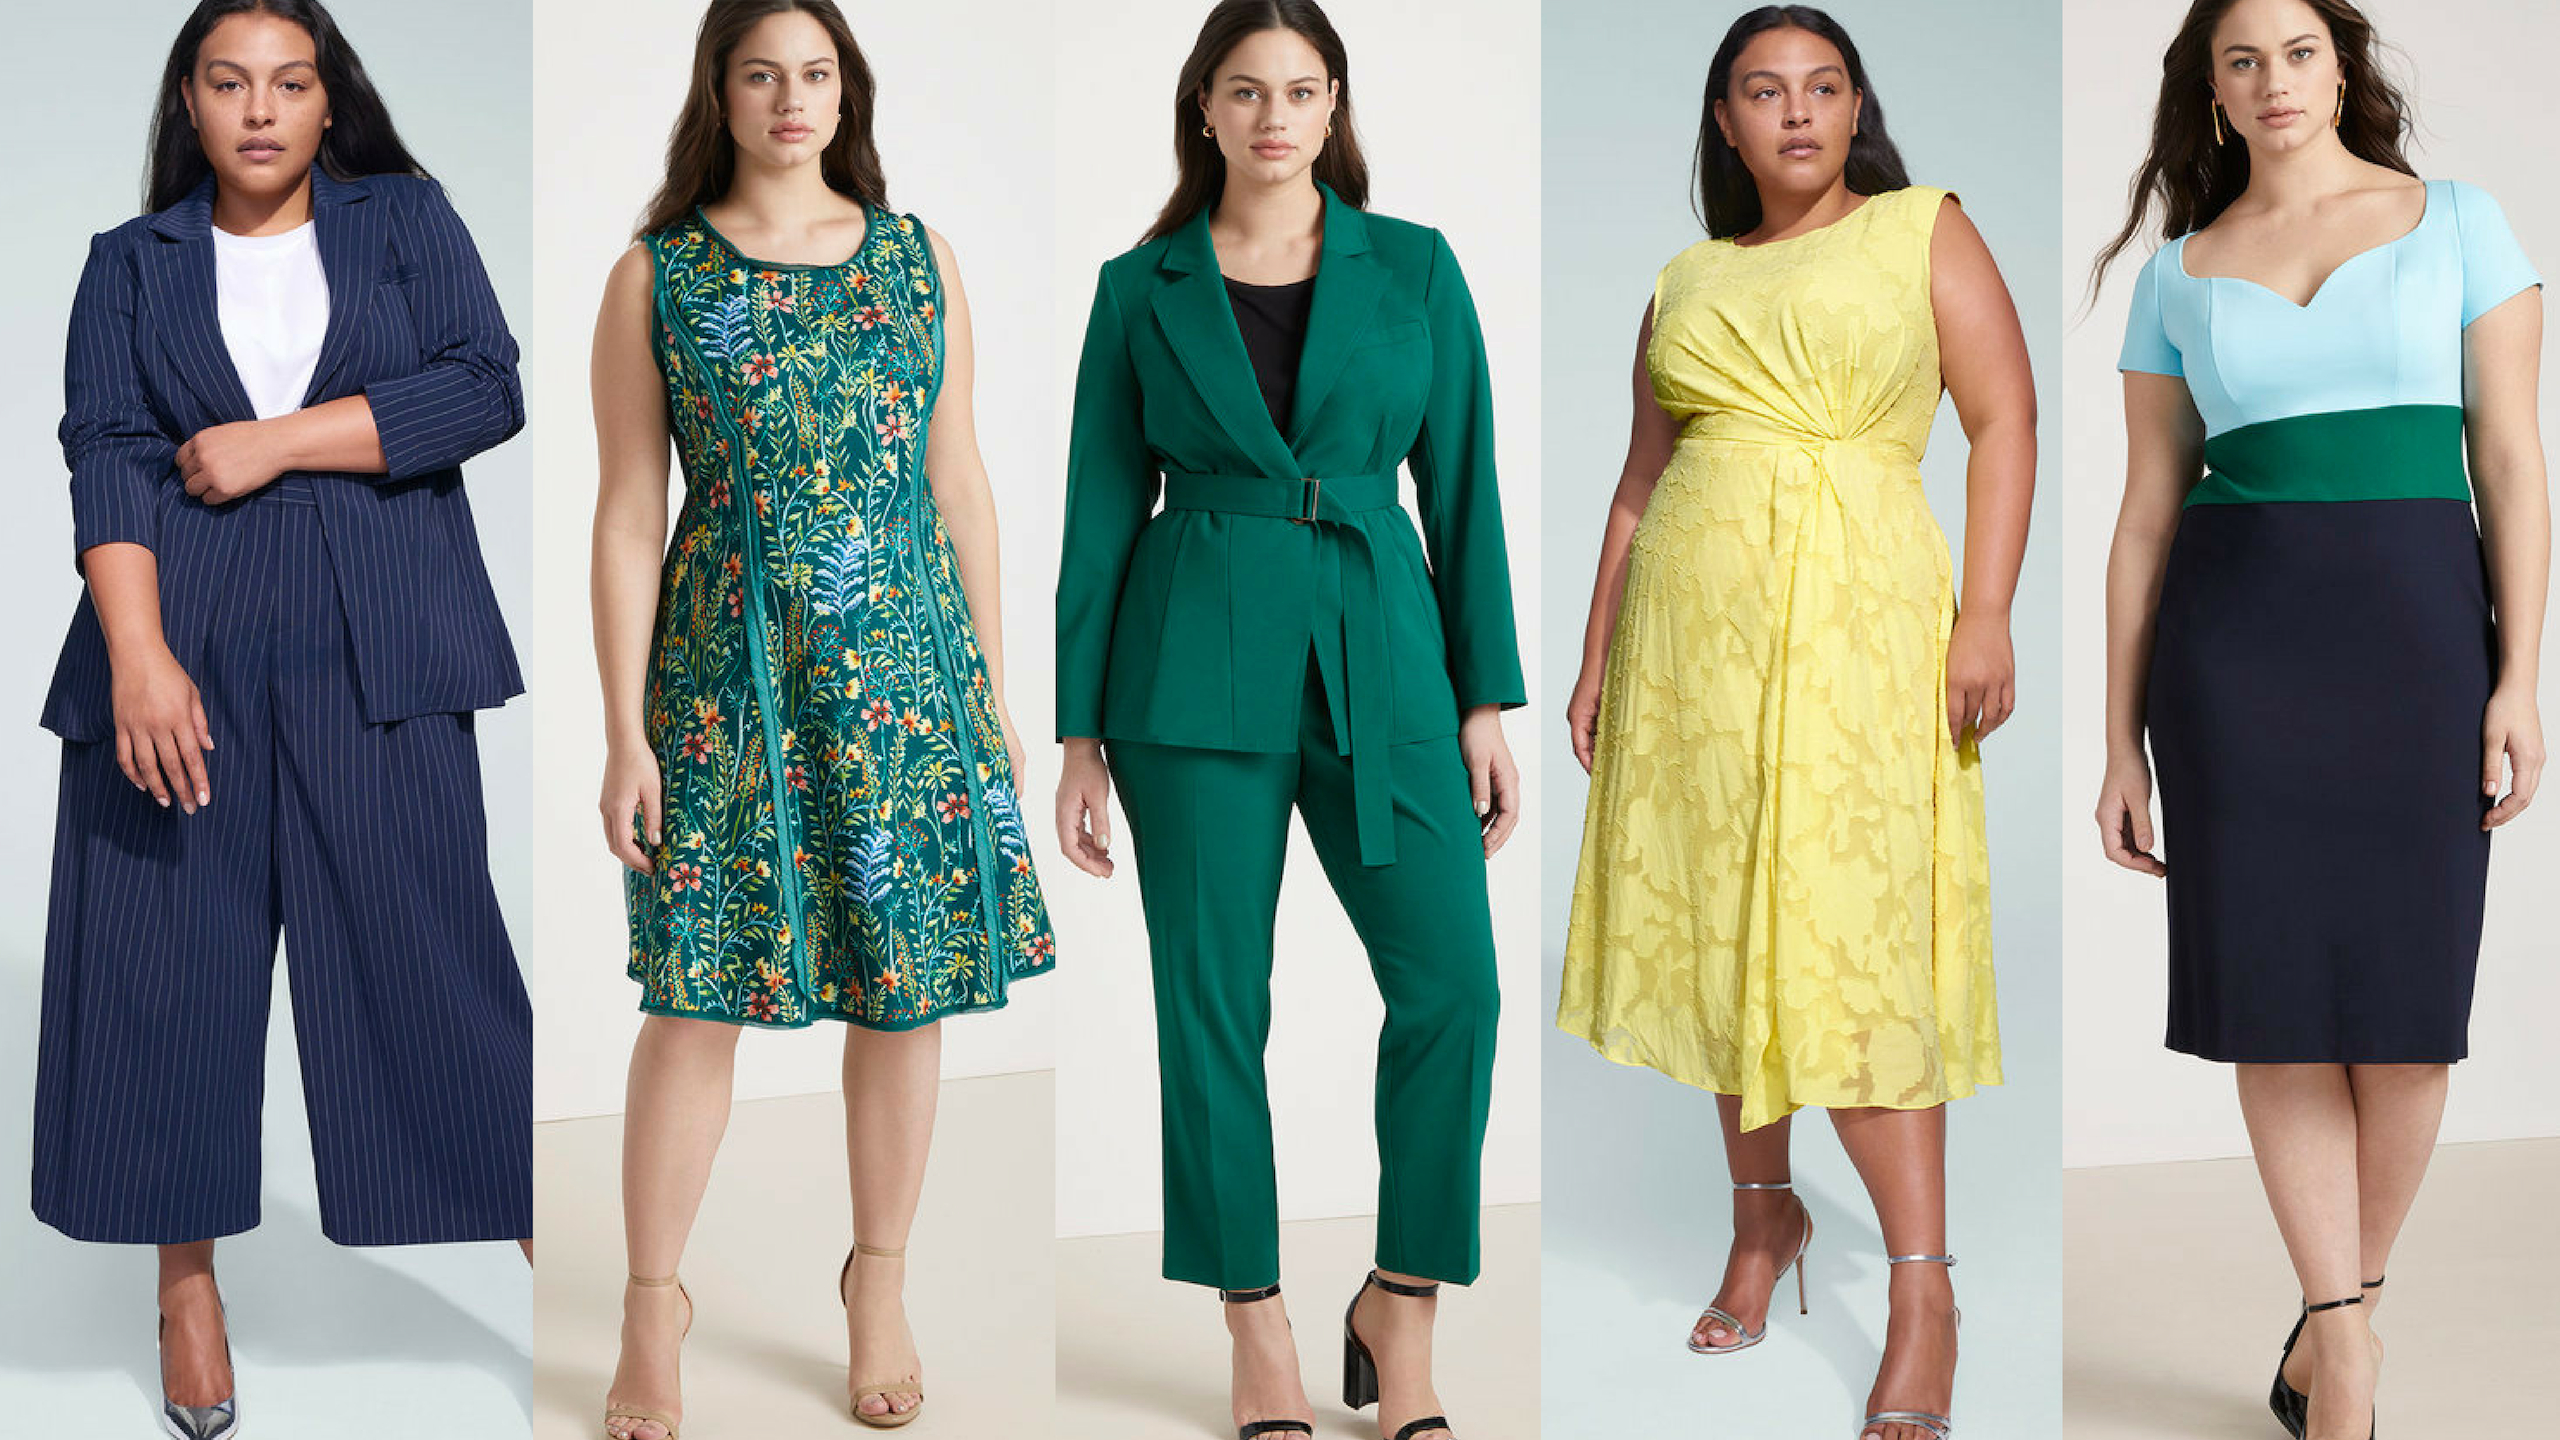 2db219e7d21 My Favorite Pieces From The Jason Wu x Eloquii Spring 2019 Collection